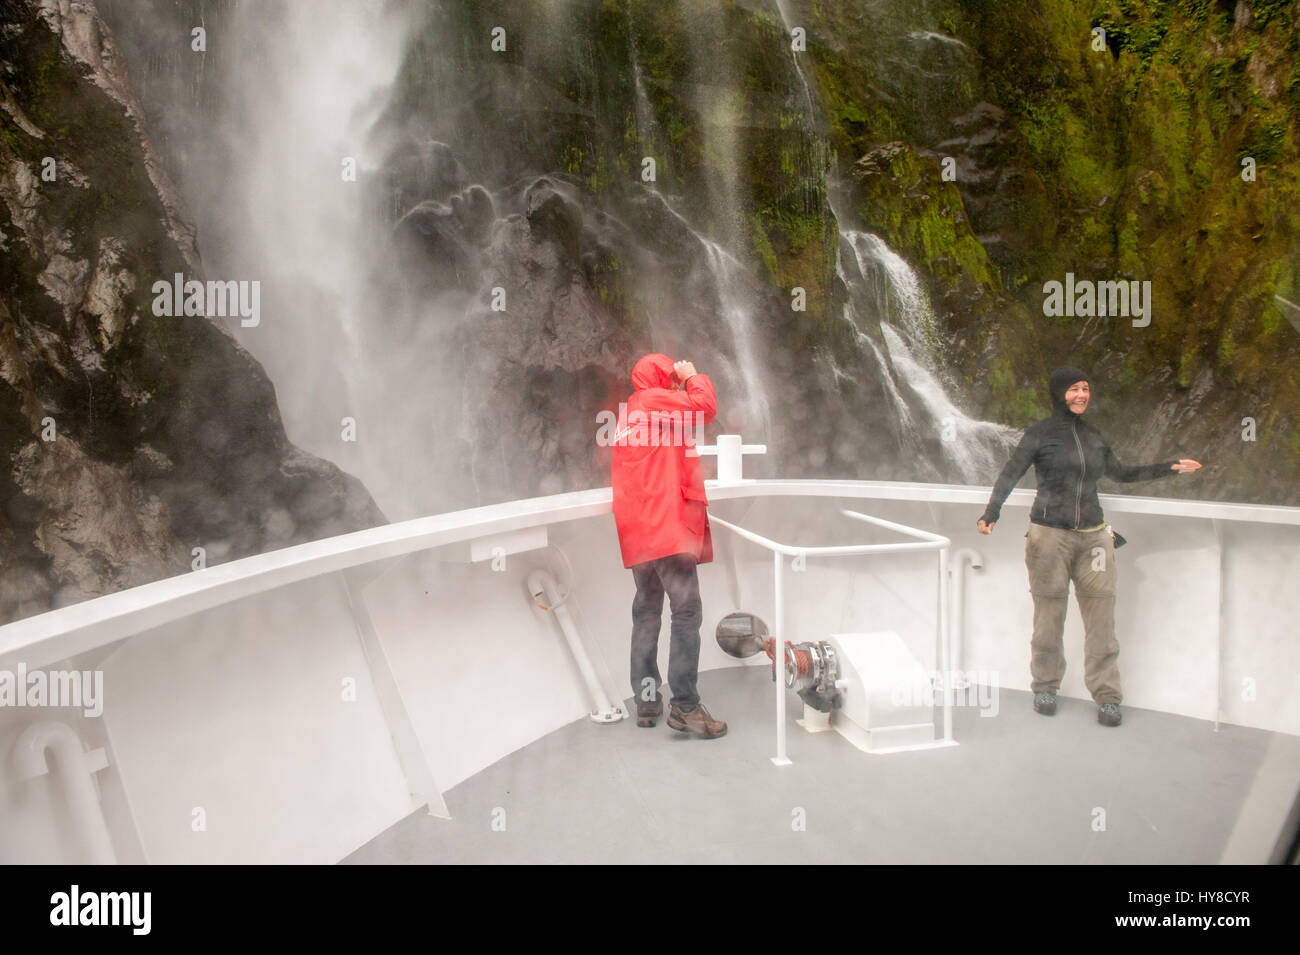 Tourists cruising near a waterfall in Milford sound, Fiordlands National Park, New Zealand - Stock Image